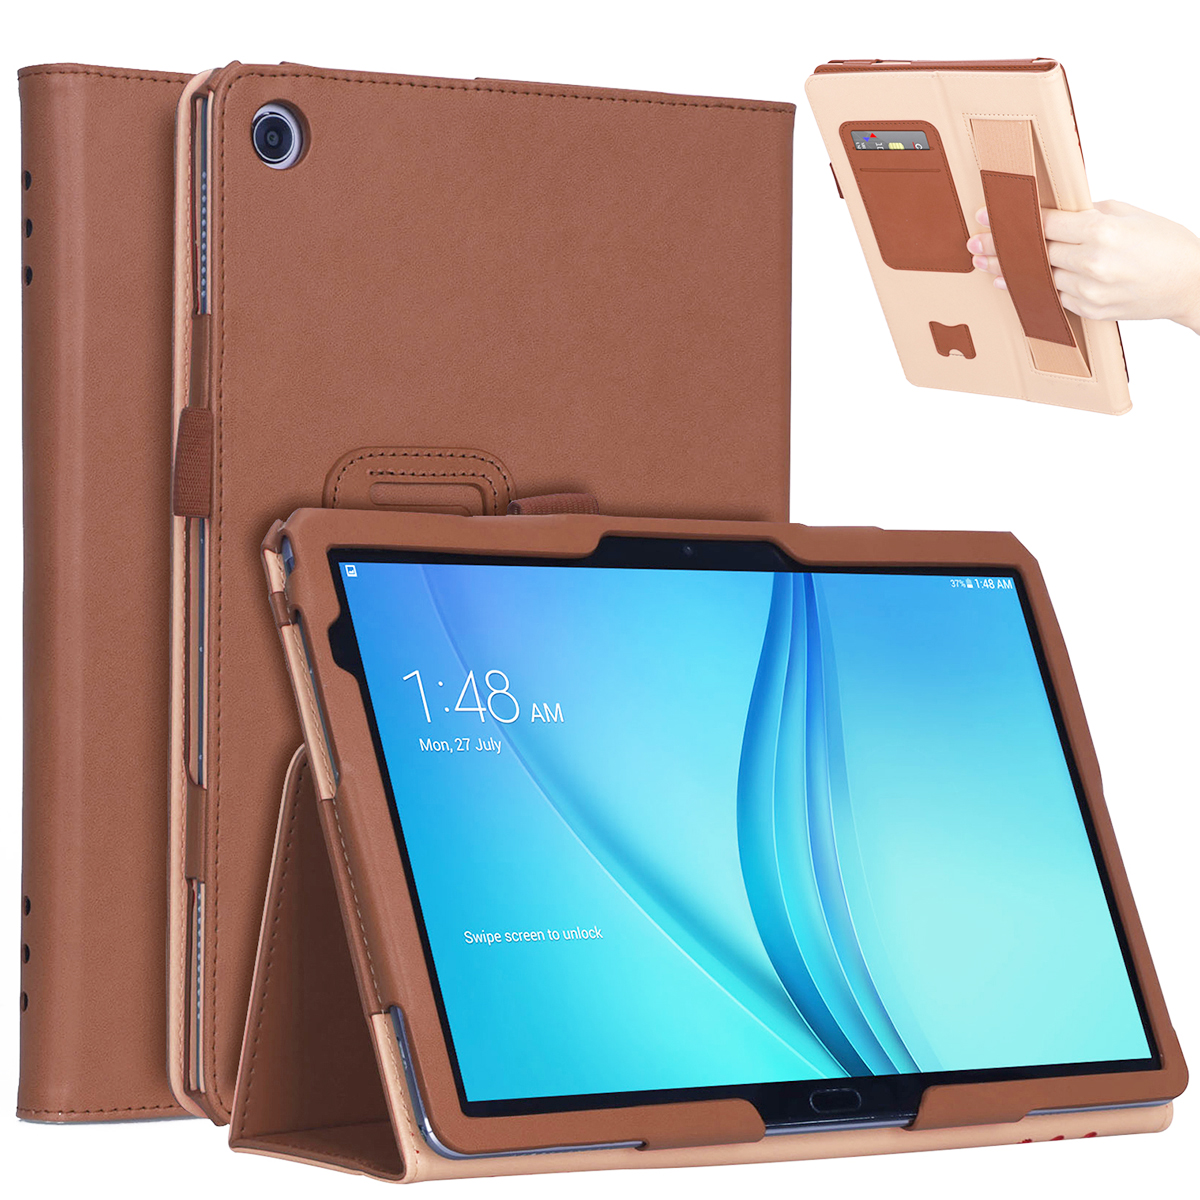 For HUAWEI M5 lite 10.1 Retro Pattern PU Leather Protective Case with Hand Support Pen Slot Sleep Function brown_HUAWEI M5 lite 10.1